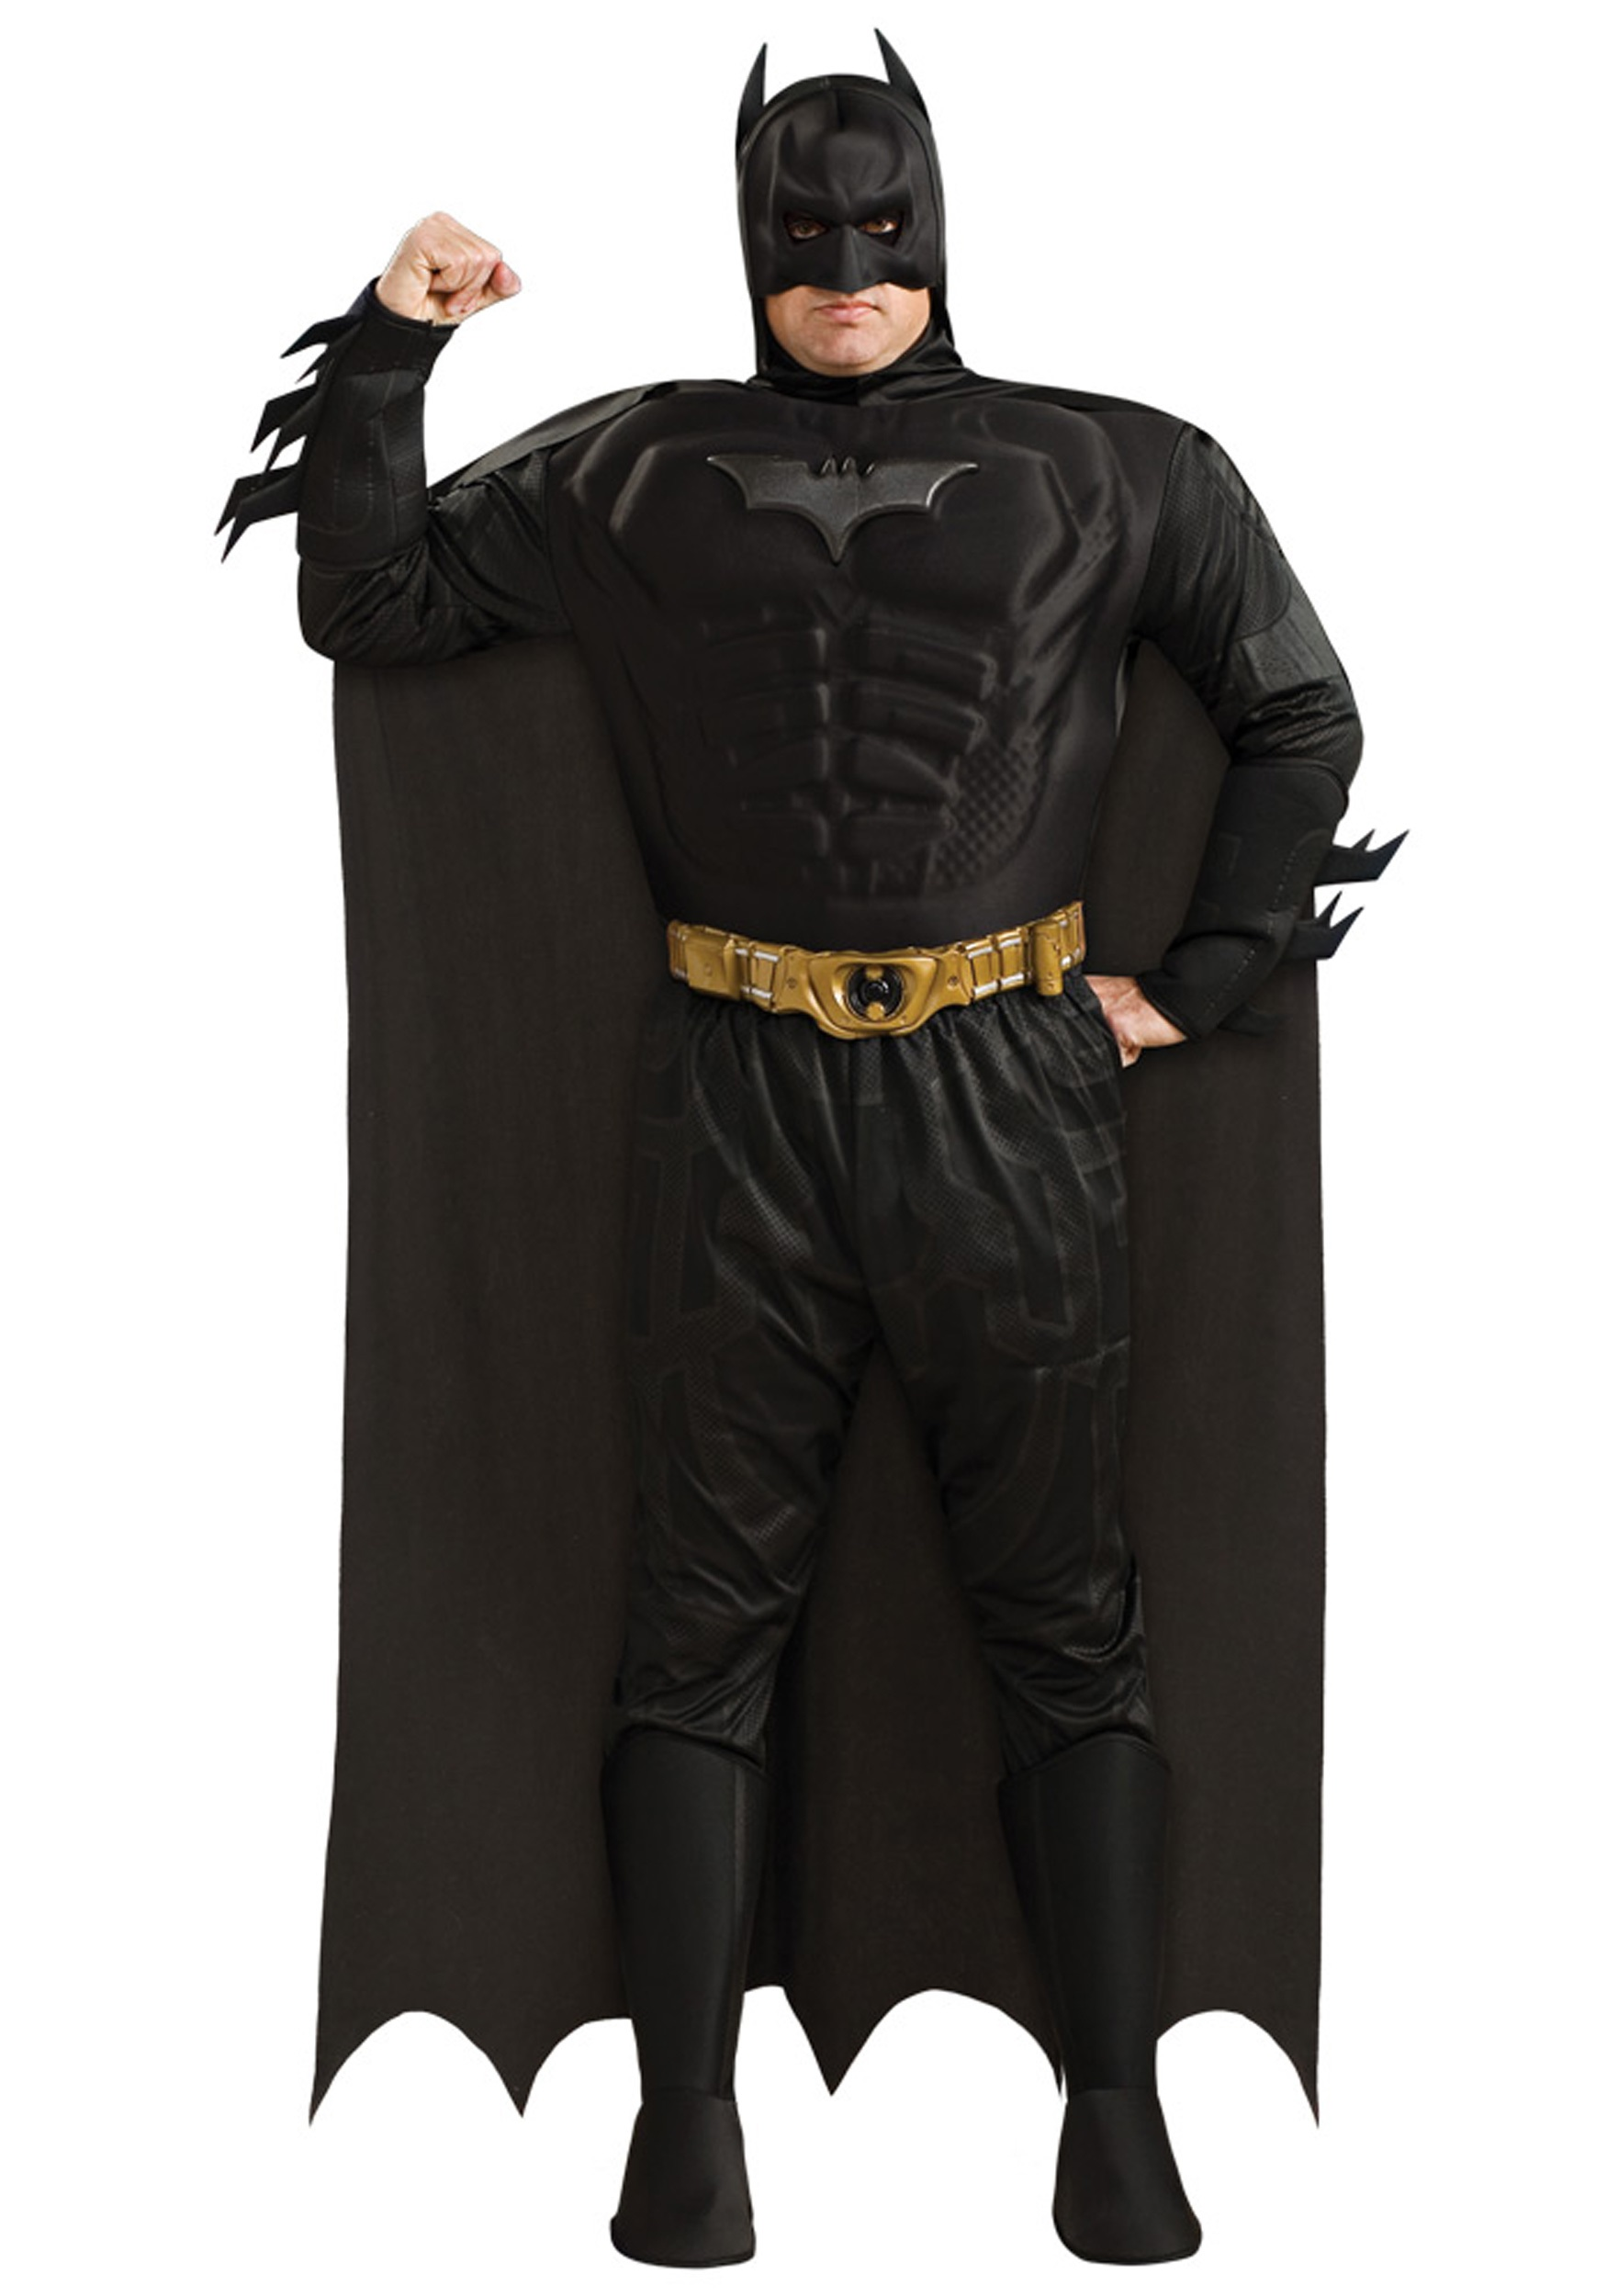 Plus Size Dark Knight Batman Adult Costume  sc 1 st  Halloween Costume & Plus Size Dark Knight Batman Adult Costume - Plus Size Superhero ...